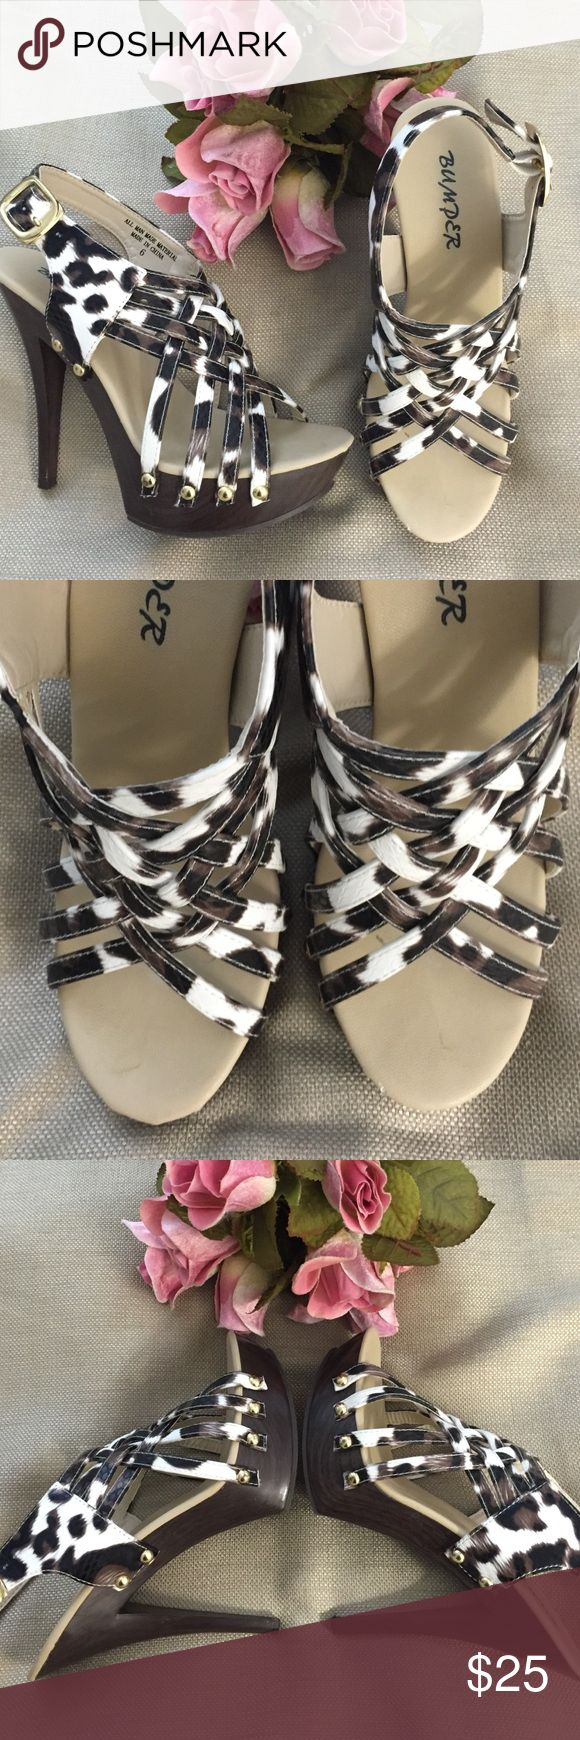 NWOT Bumper strappy animal print heeled sandals. Super sexy!!! NWOT Bumper strappy heeled sandals. Animal print faux snake. One tiny flaw on left shoe where toes would be. A mystery as they have never been worn. Hard to see. Heel is sky high measuring 5 inches. Platform measures 1 & 1/2 inches. WOW!!!! Bumper Shoes Heels